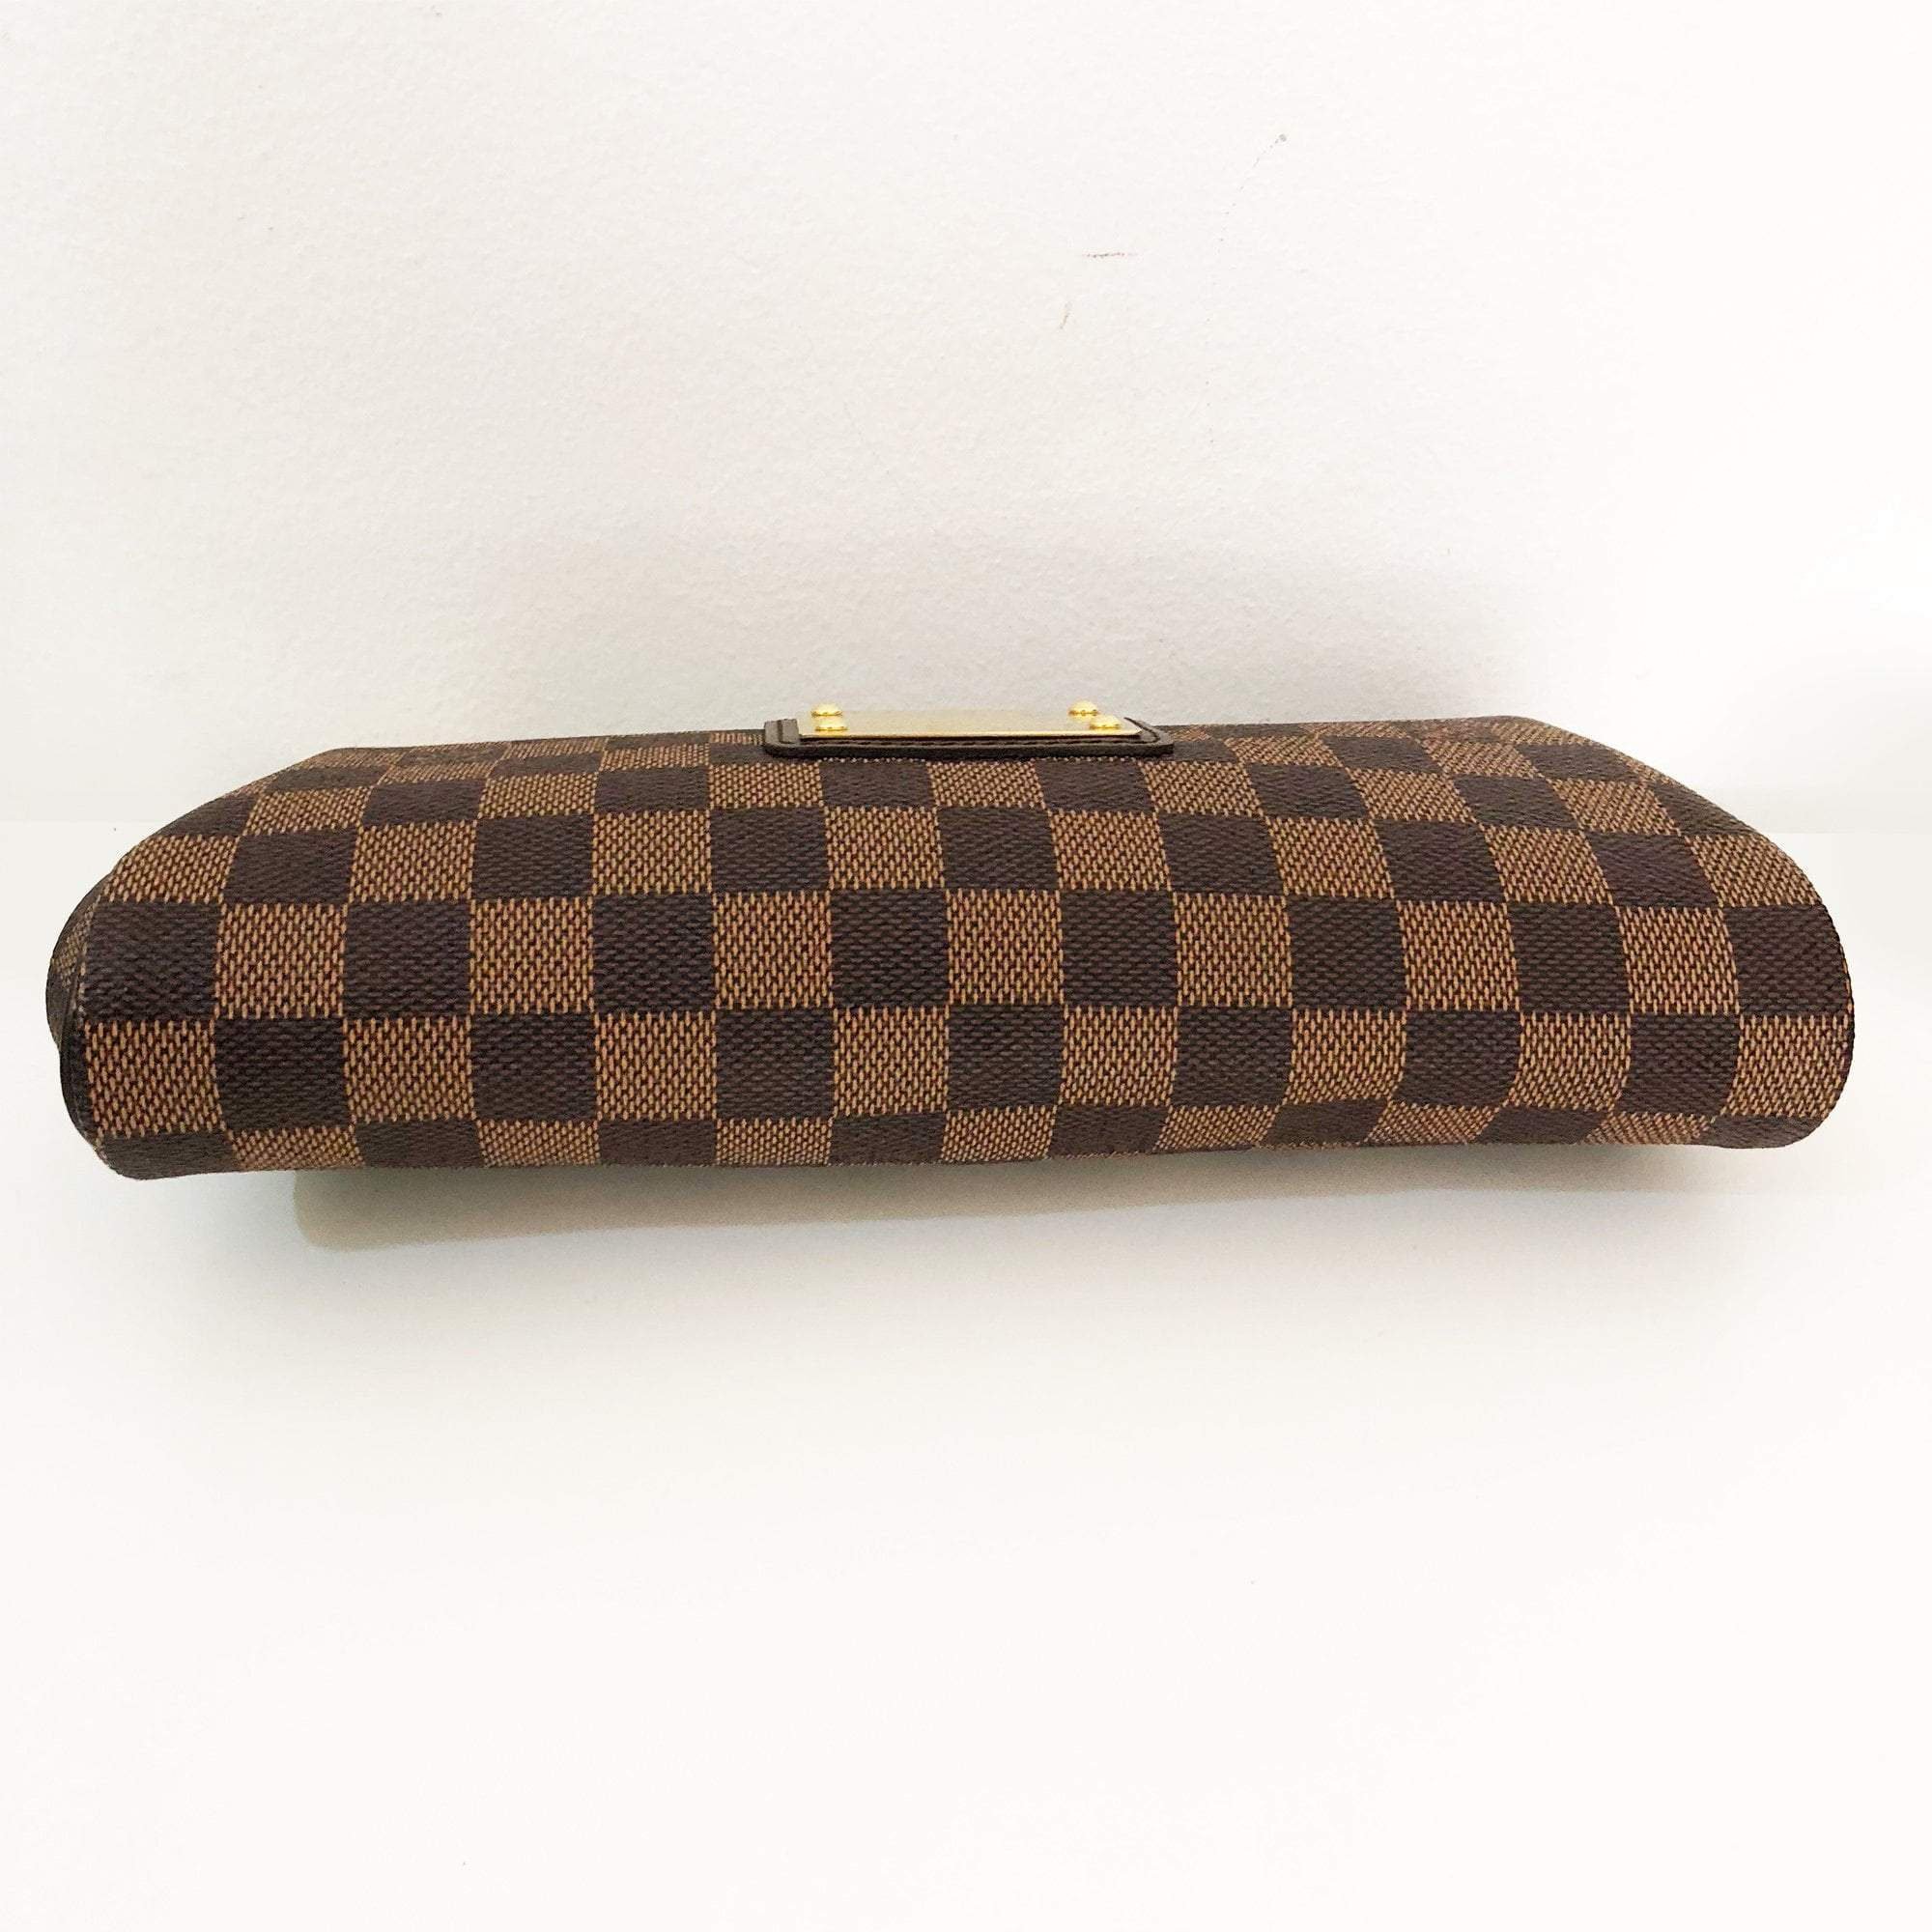 Louis Vuitton Damier Pochette